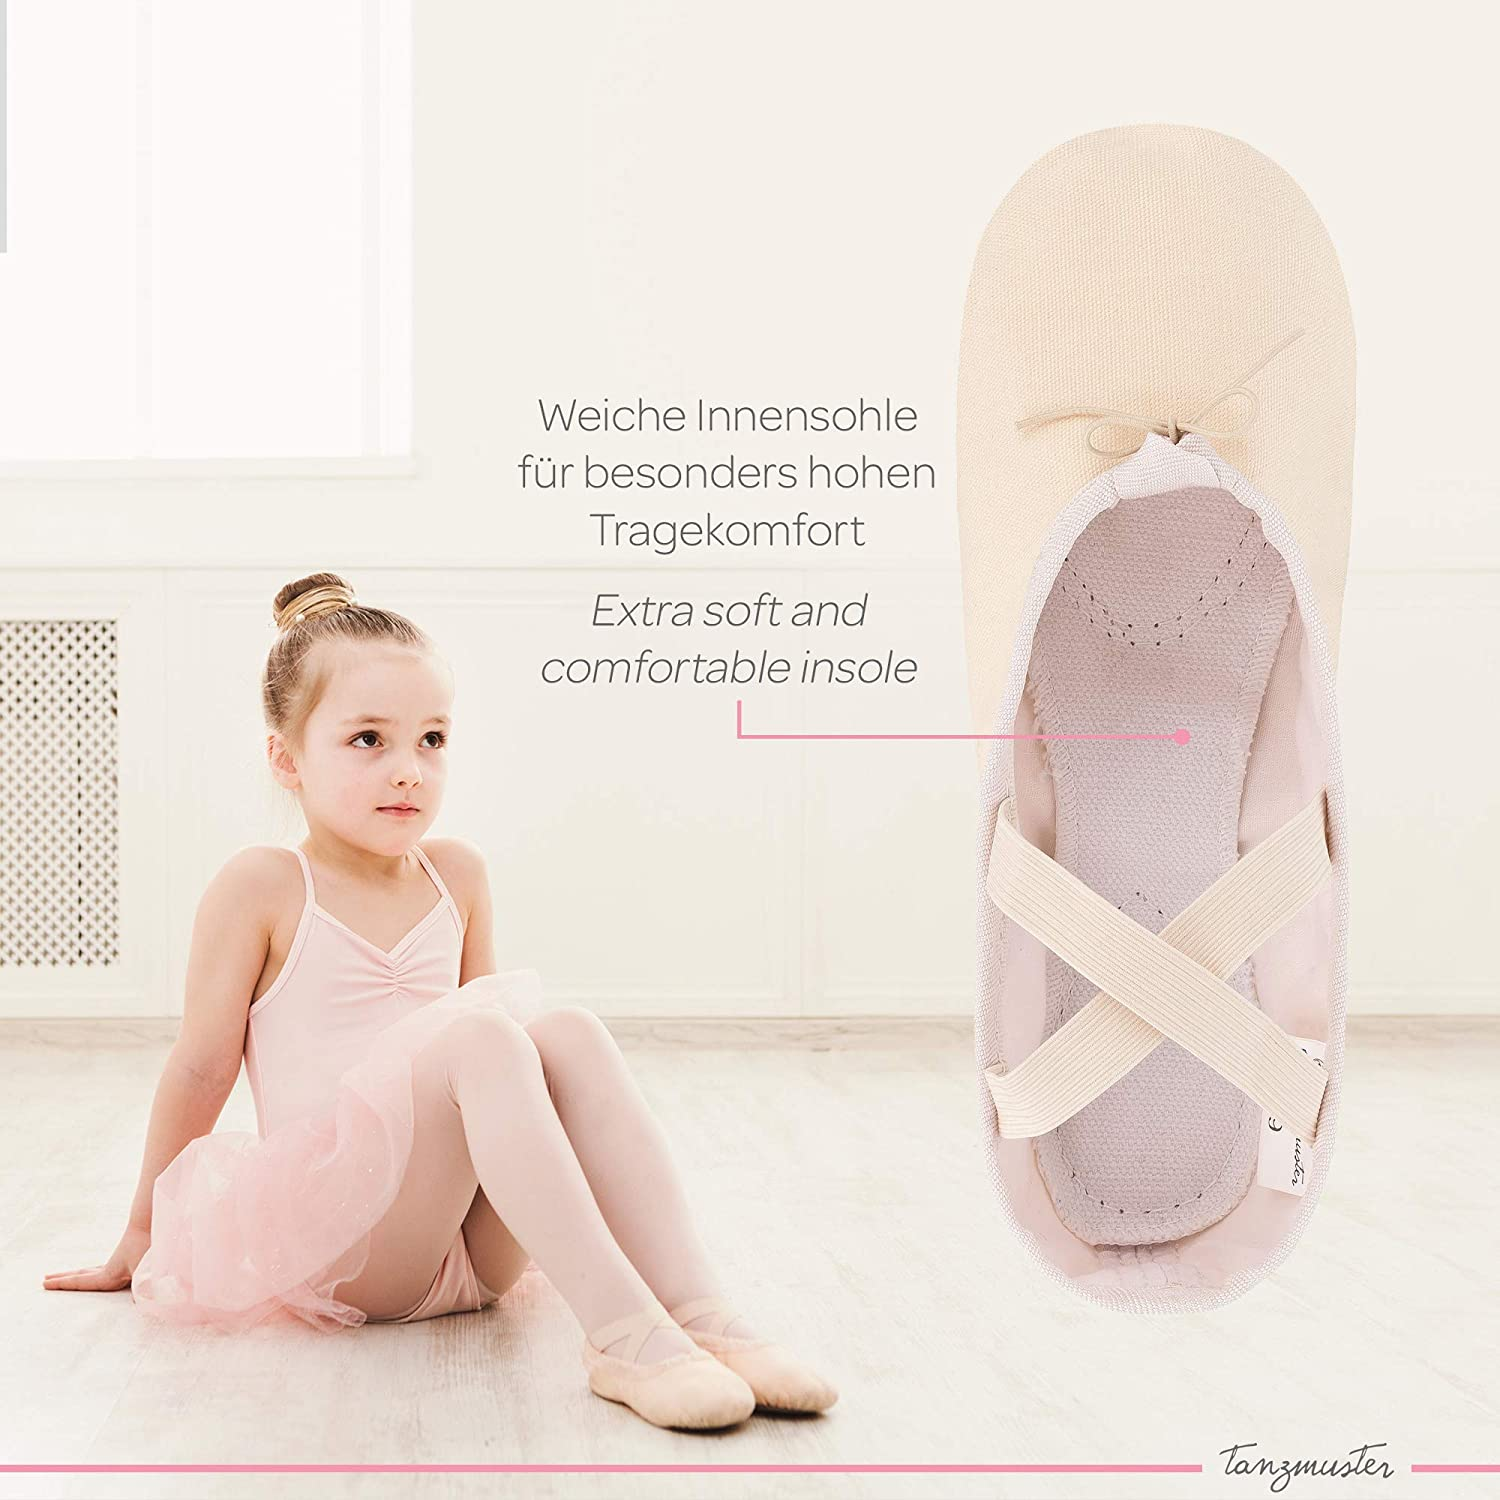 Cotton Lining 12 UK Adult tanzmuster Canvas Ballet Shoes Charlie Sizes 5 UK Child Split Leather Sole Black and Sand-Colored Soft and Durable Material White Pink